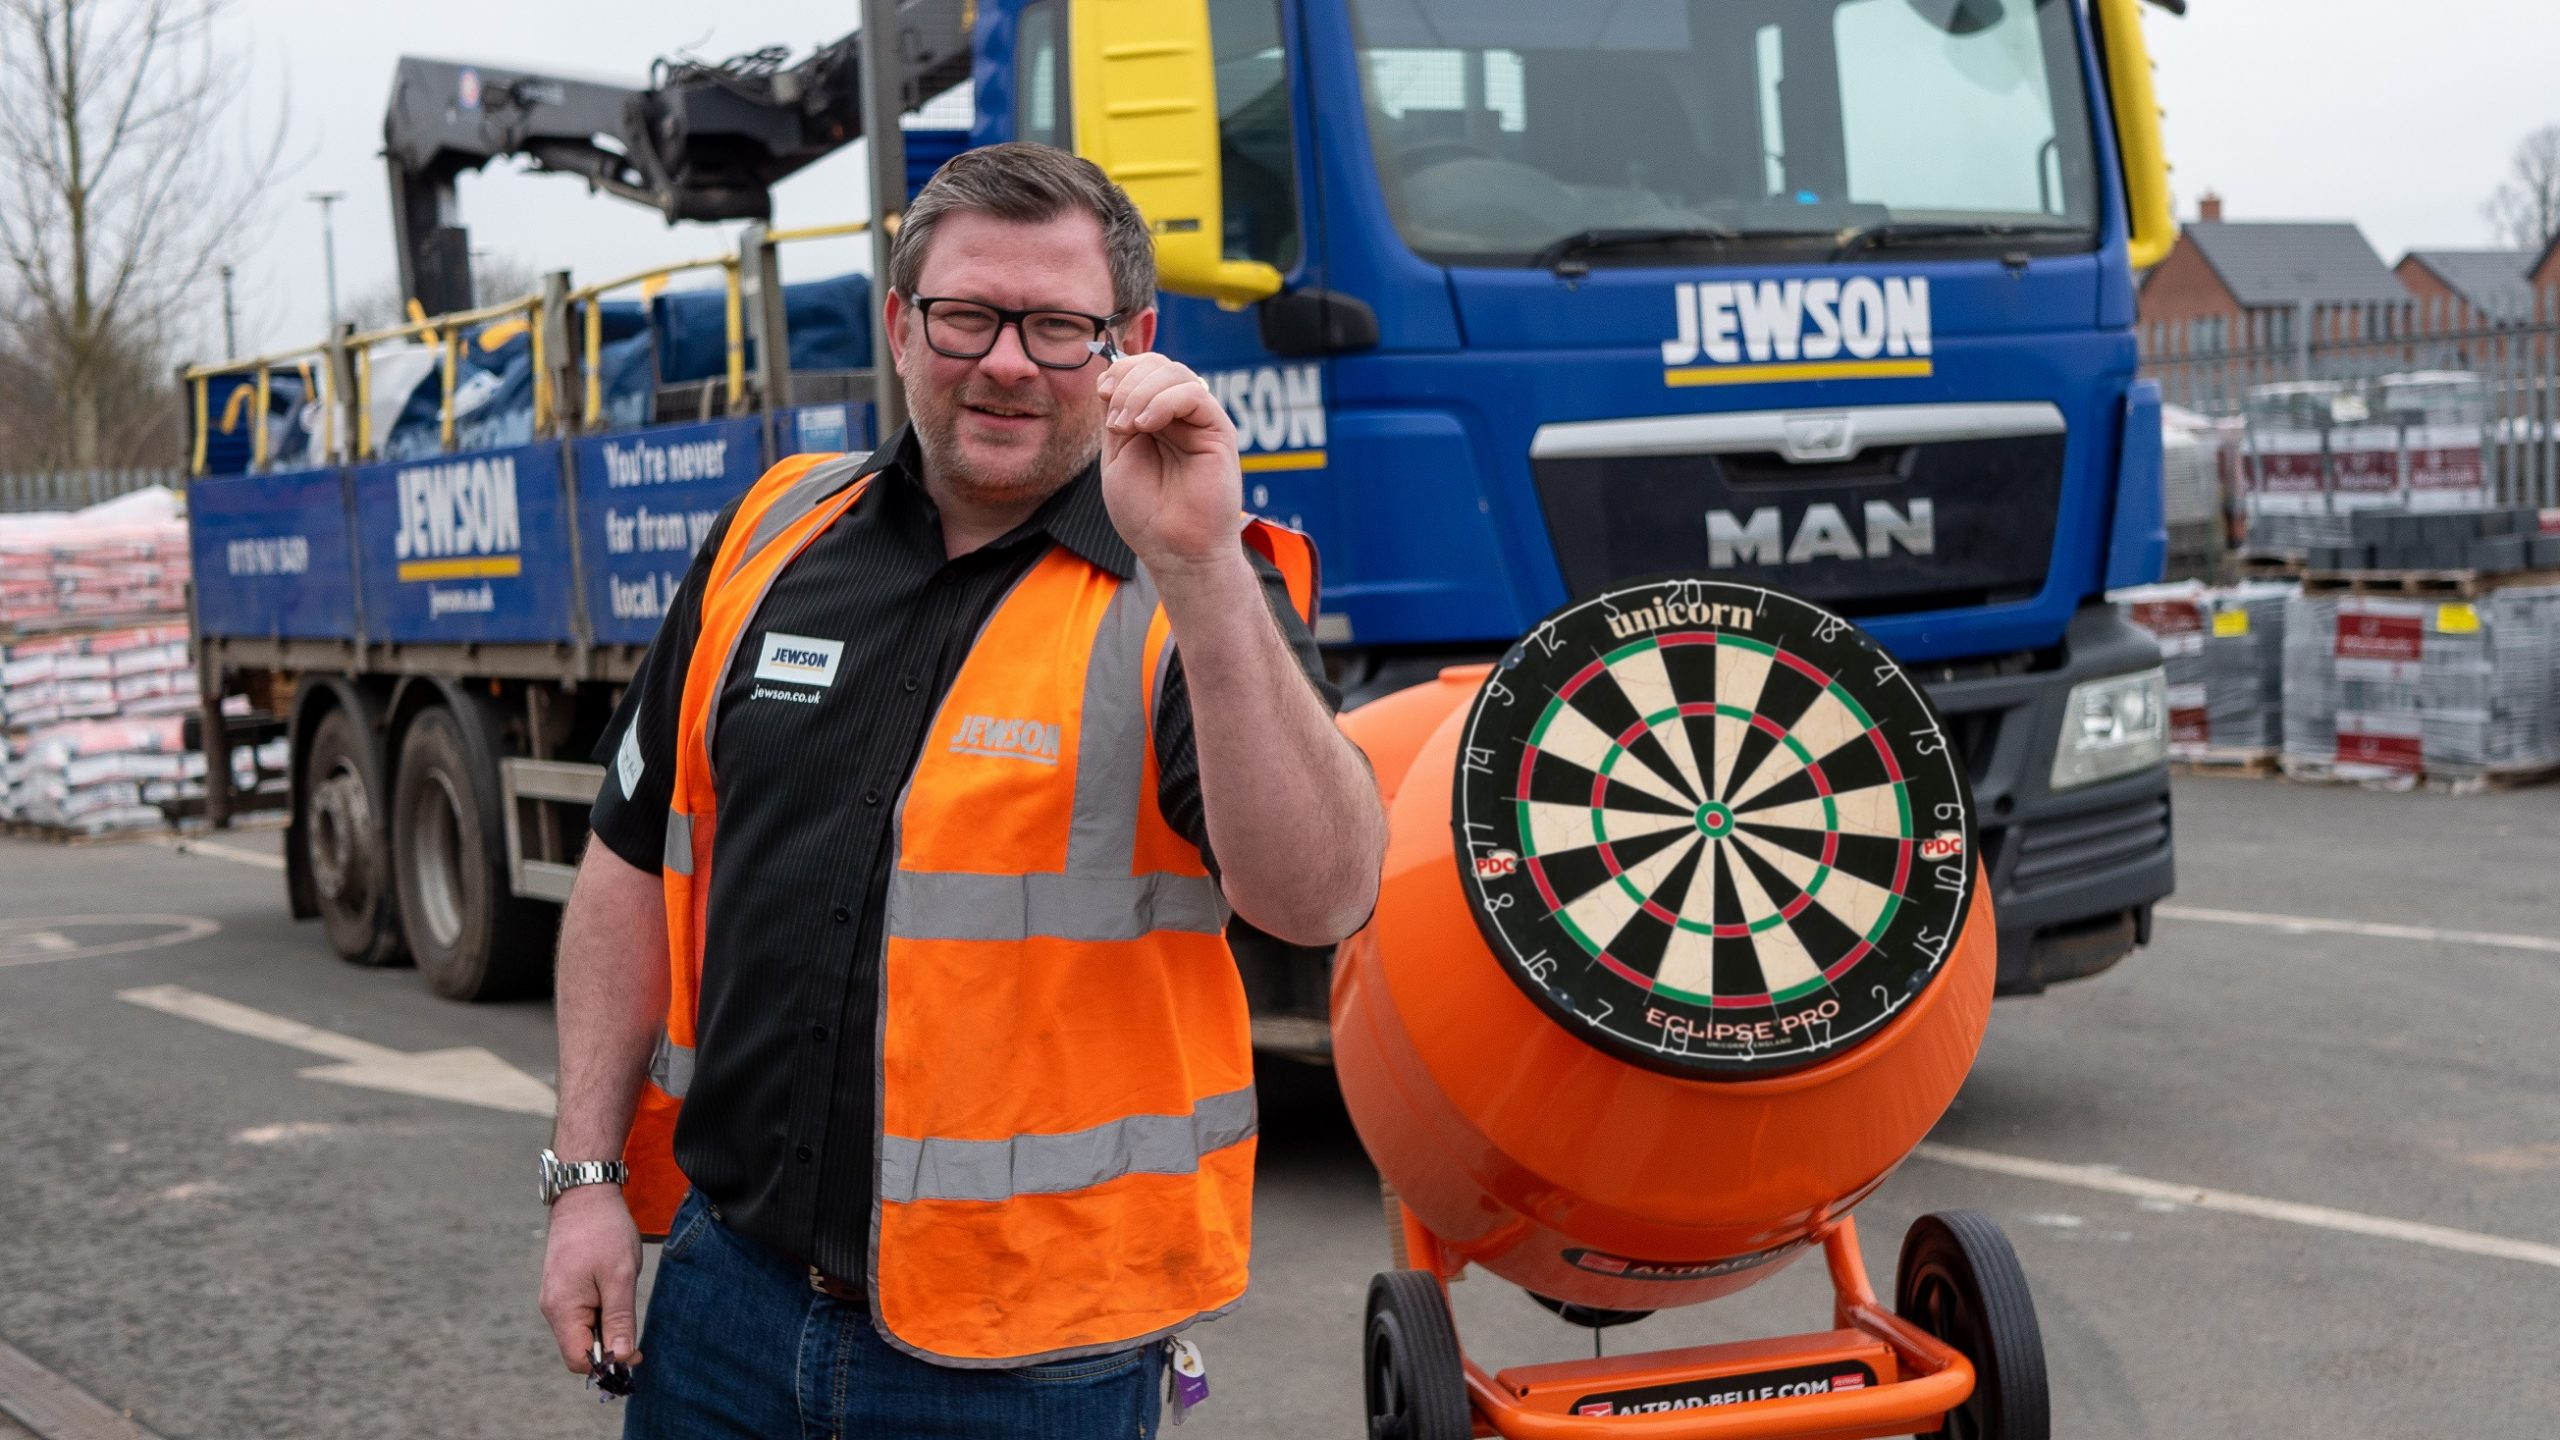 THE MACHINE LOOKS TO BUILD WITH JEWSON